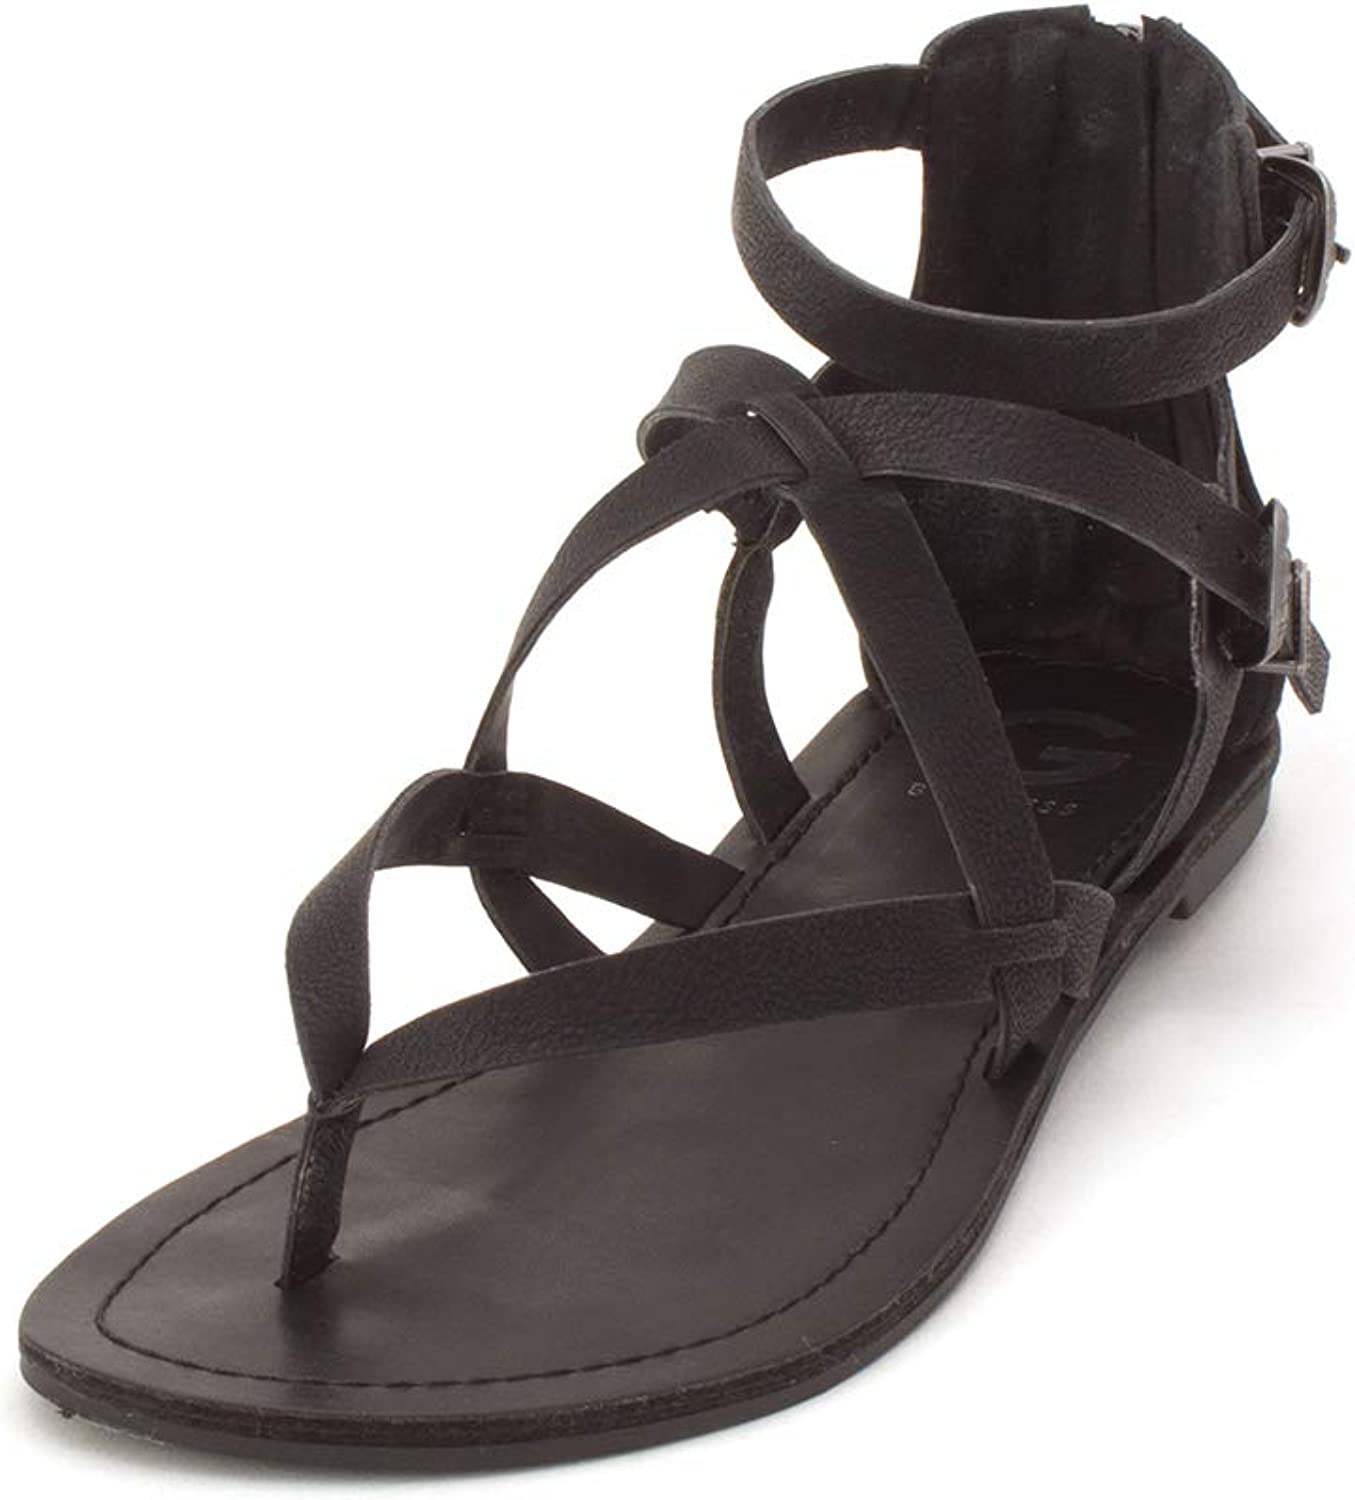 G By Guess Womens Hollee Leather Open Toe Casual Gladiator Sandals